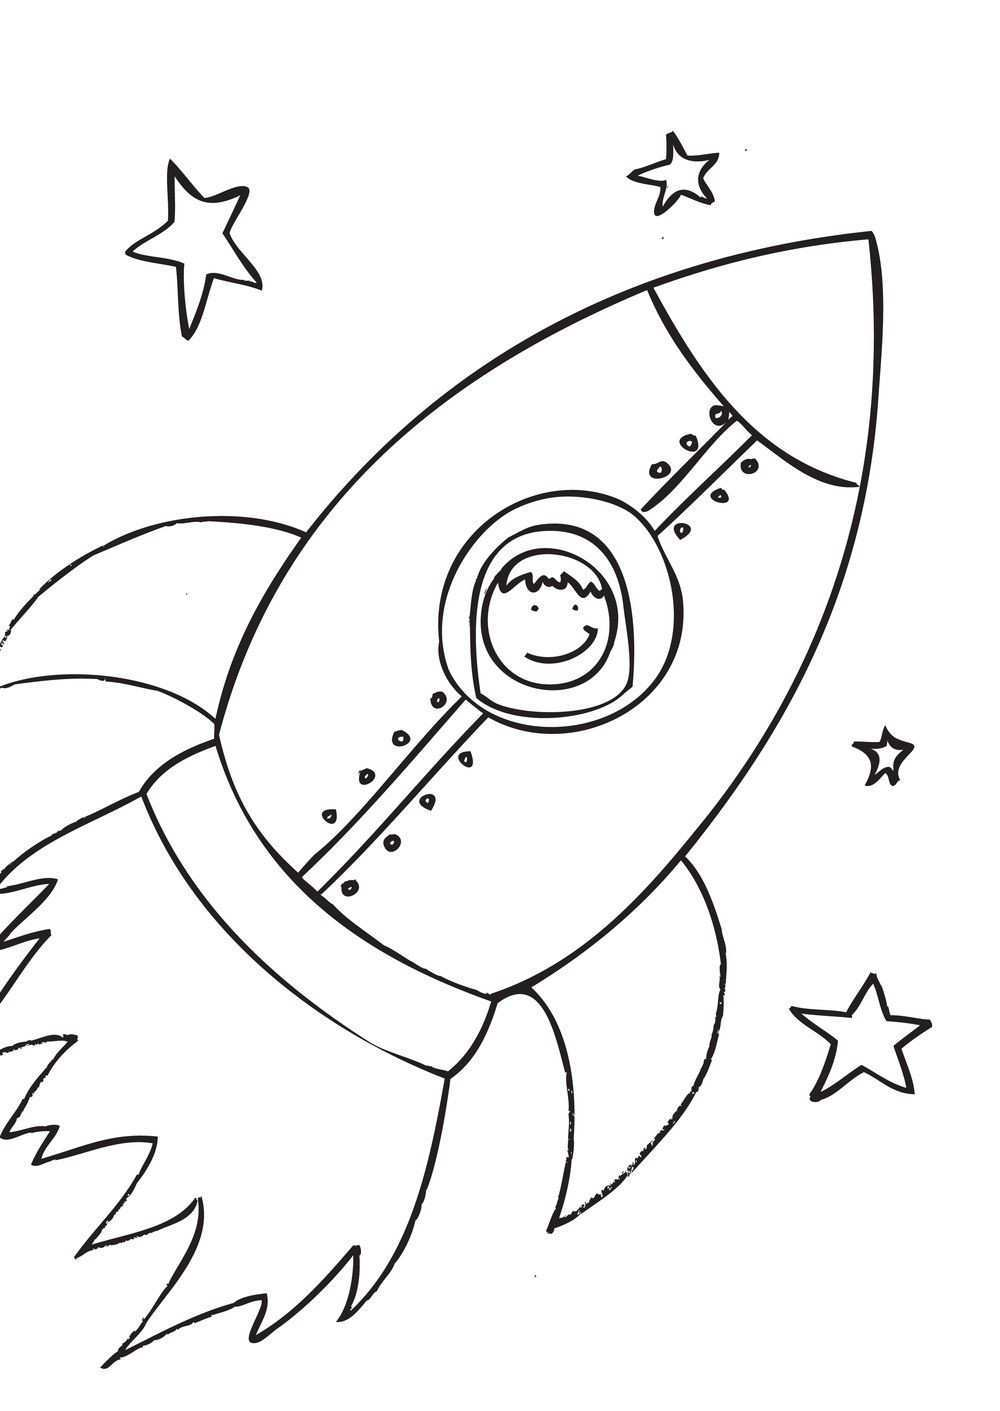 how to draw a rocket ship rocket ship drawing free download on clipartmag to a ship rocket draw how